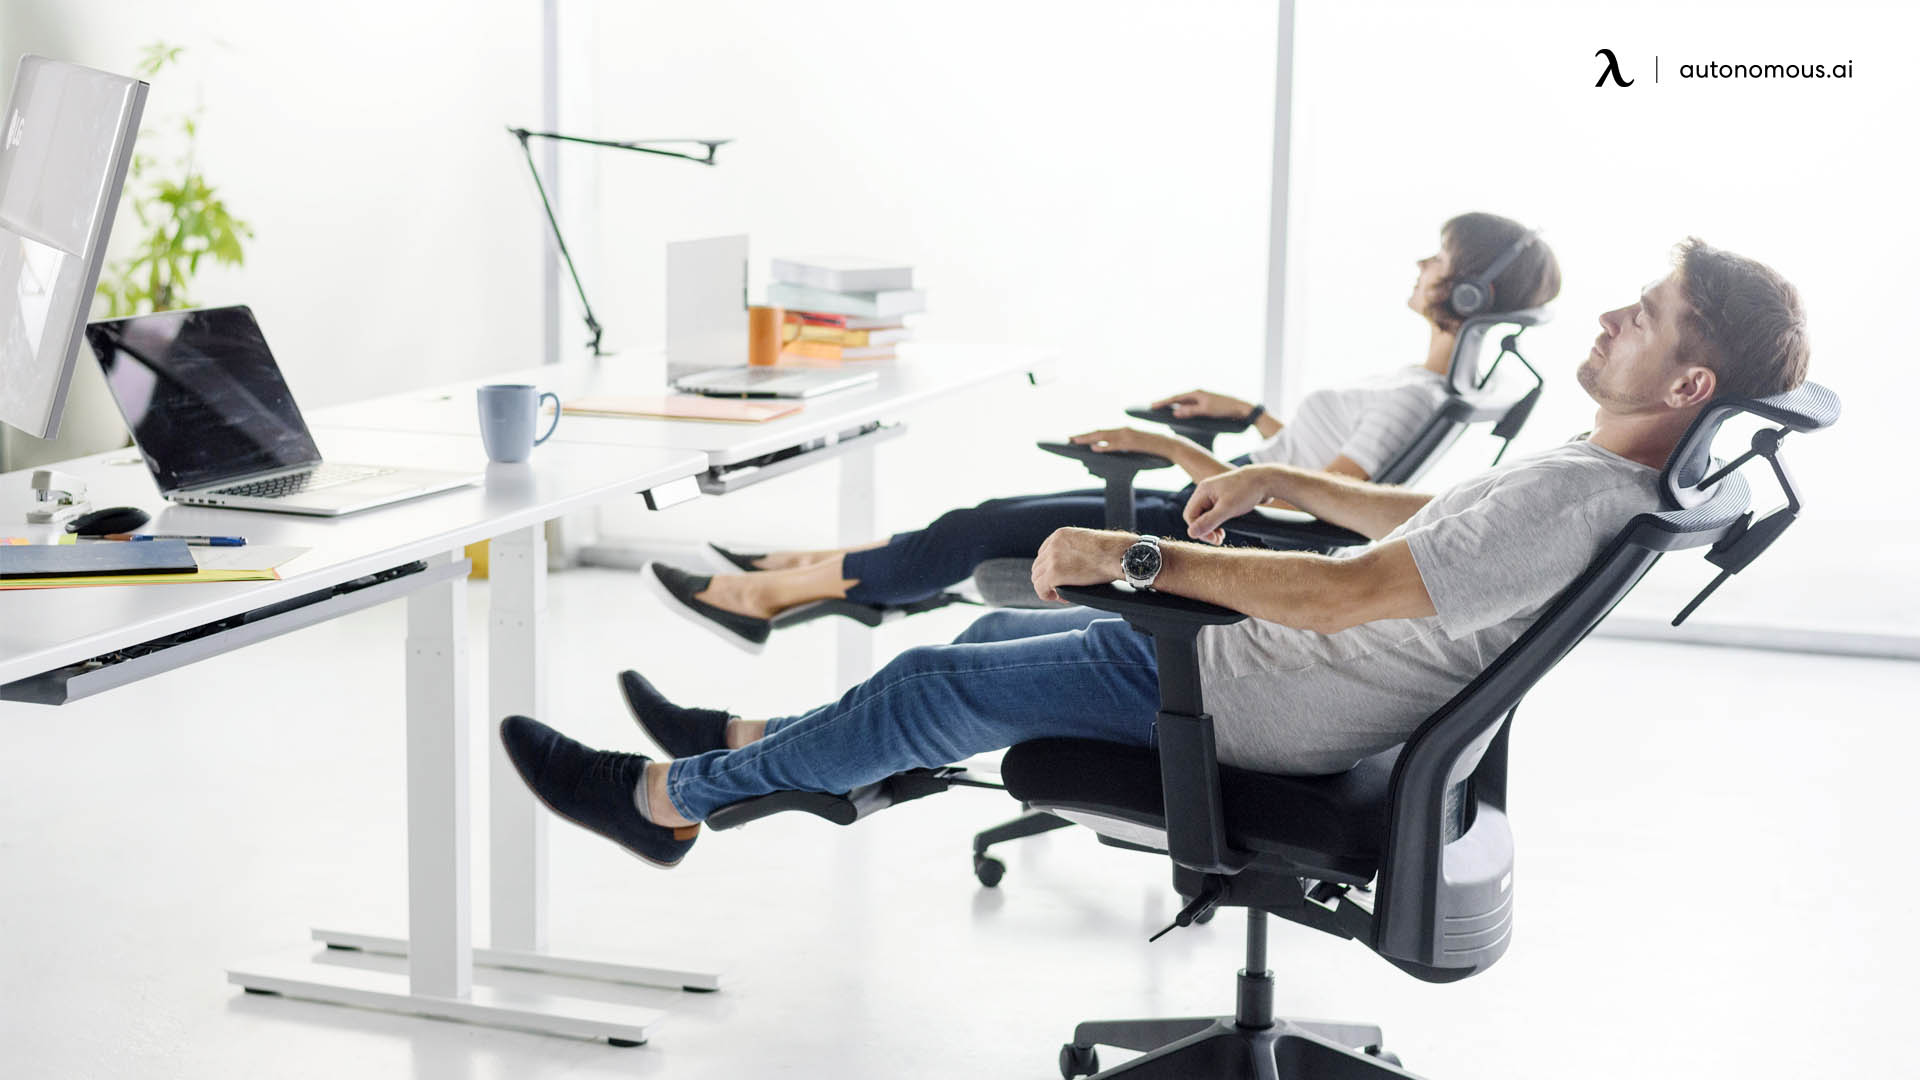 Different types of Workforce Solutions and Hybrid Work Software